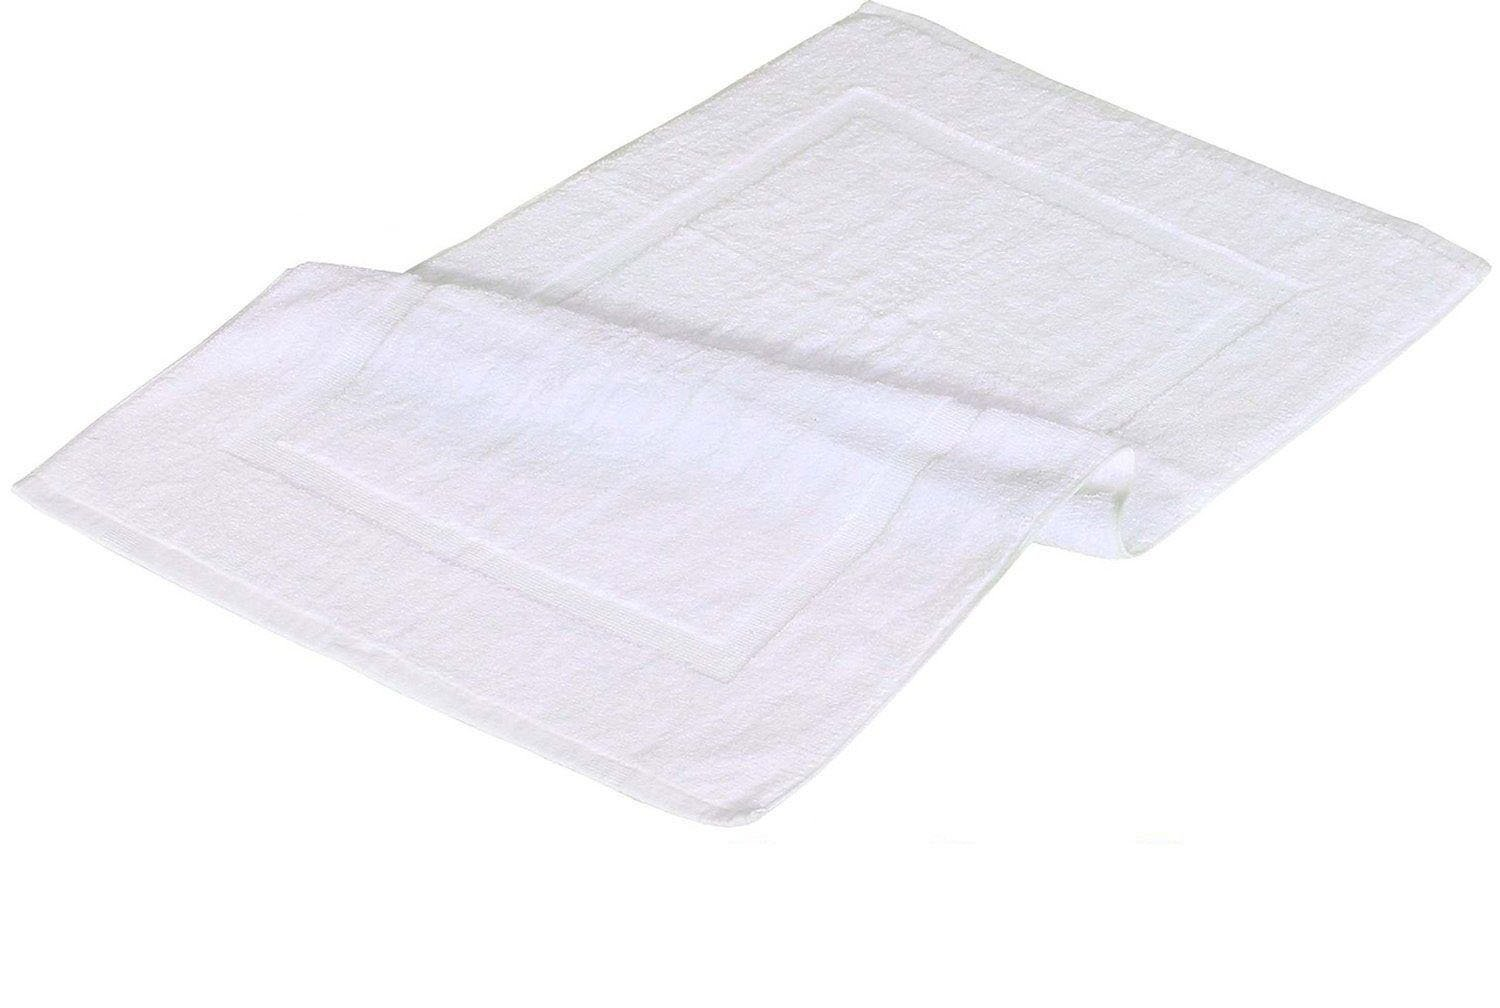 GHP 3-Pcs White 20''x30'' Poly/Cotton Single Cam Border Absorbent Hotel Bath Mats